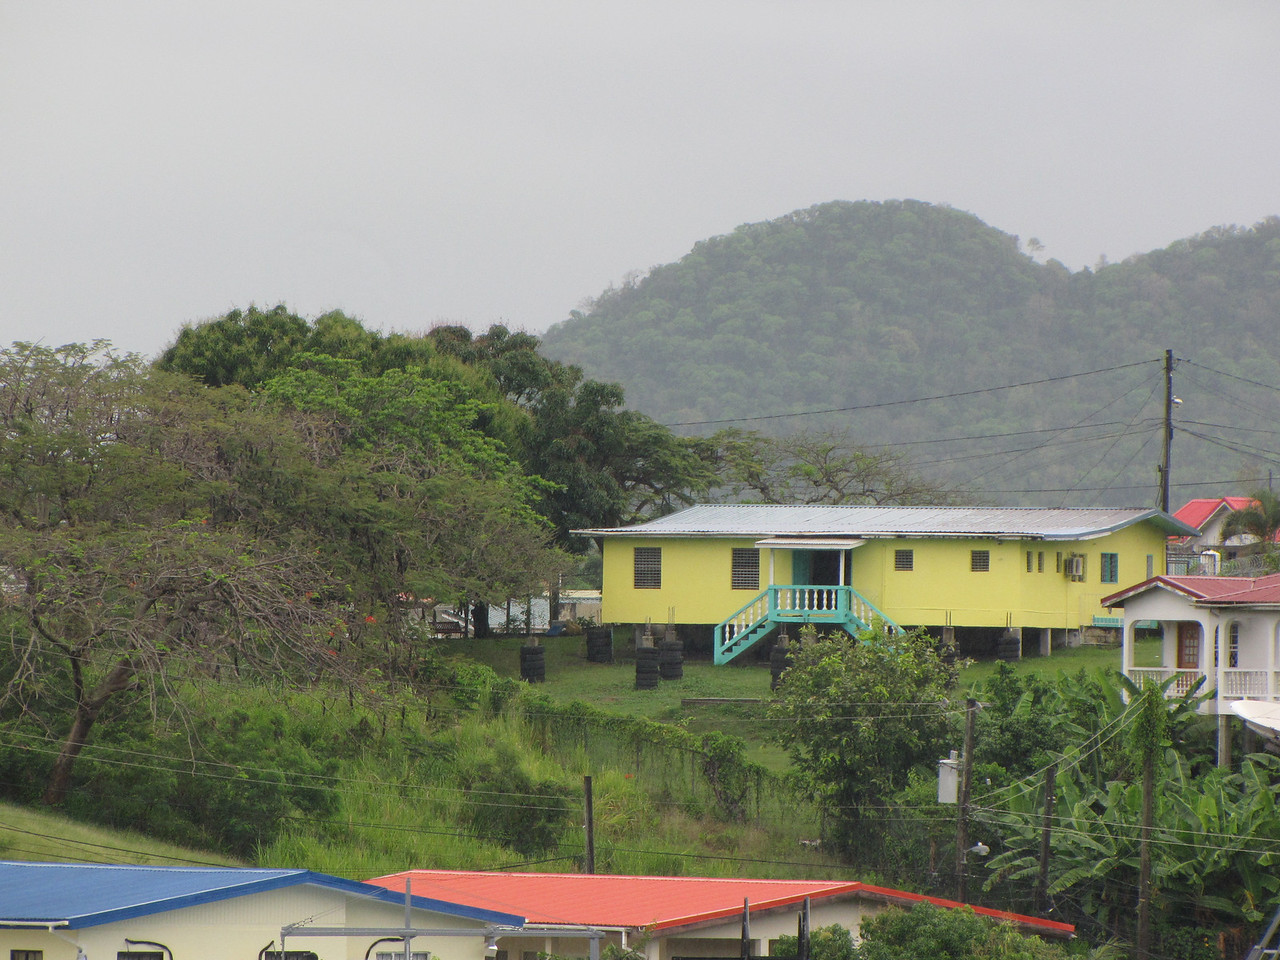 There were some colorful houses up in the hills above town.